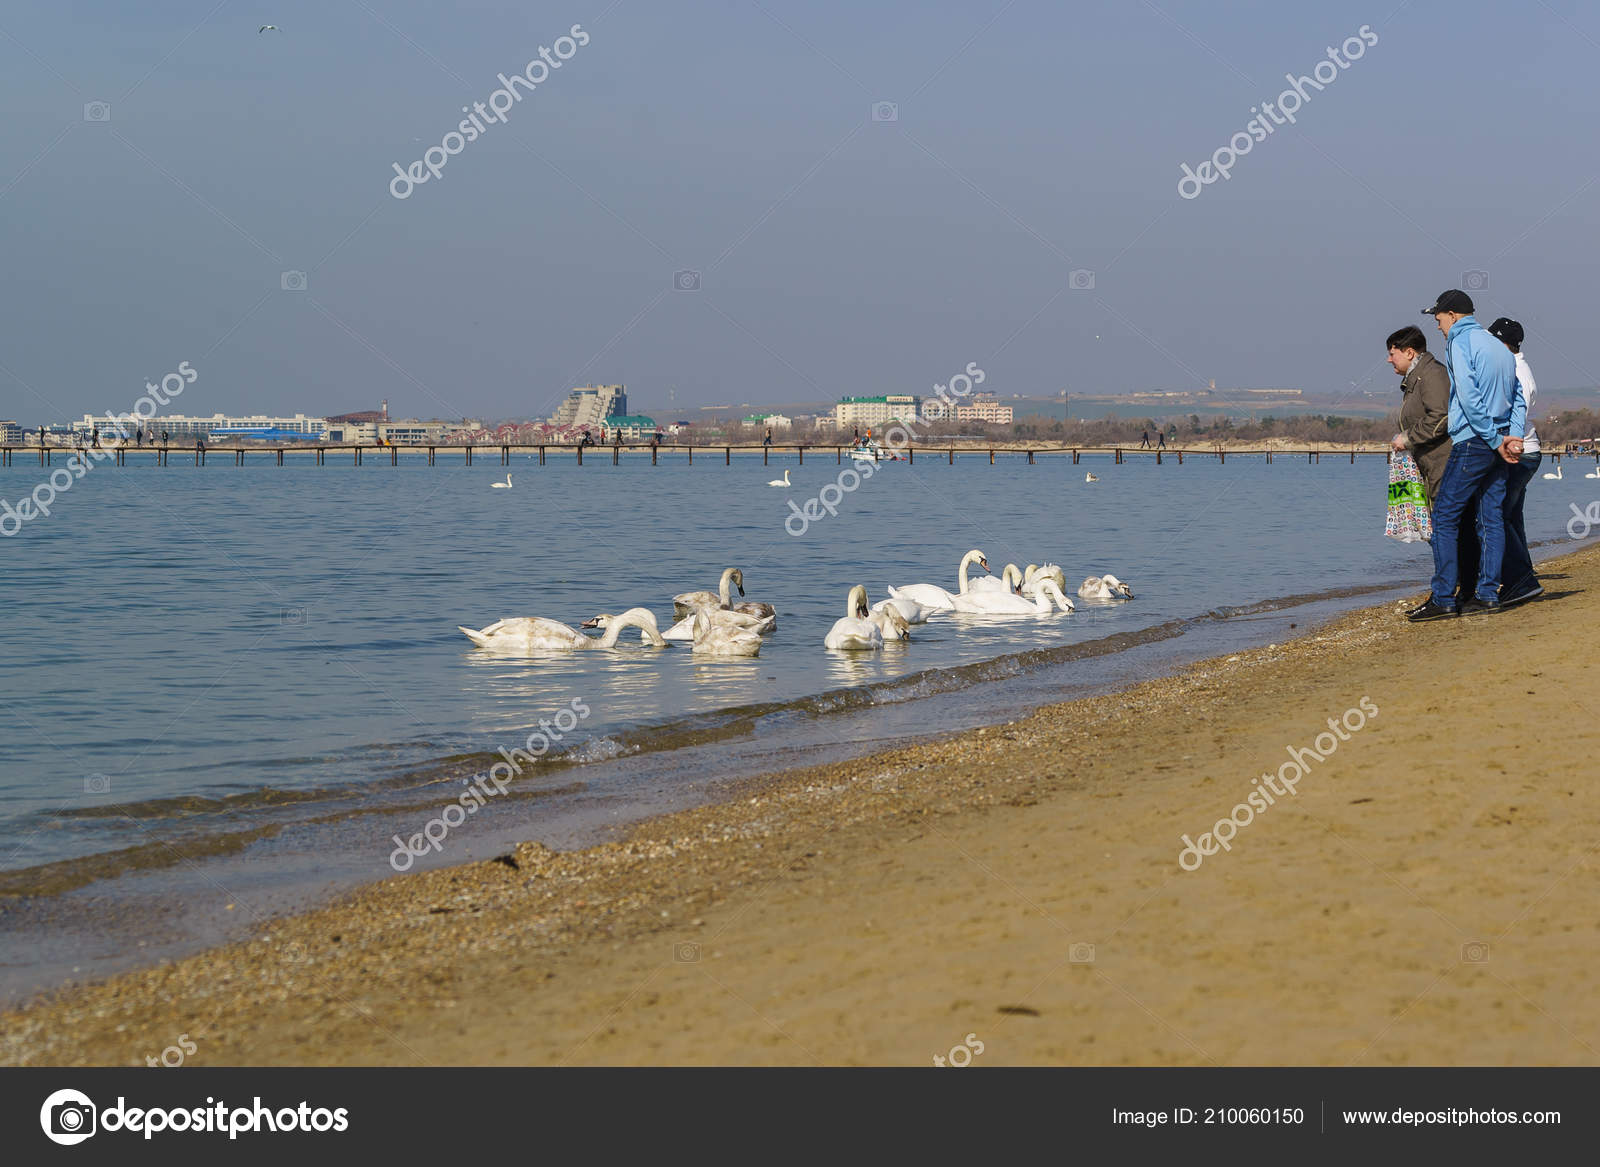 Anapa Krasnodar Krai Russia March 2017 Citizens Fed Beach Wintering Stock Editorial Photo C Garmashevanatali 210060150